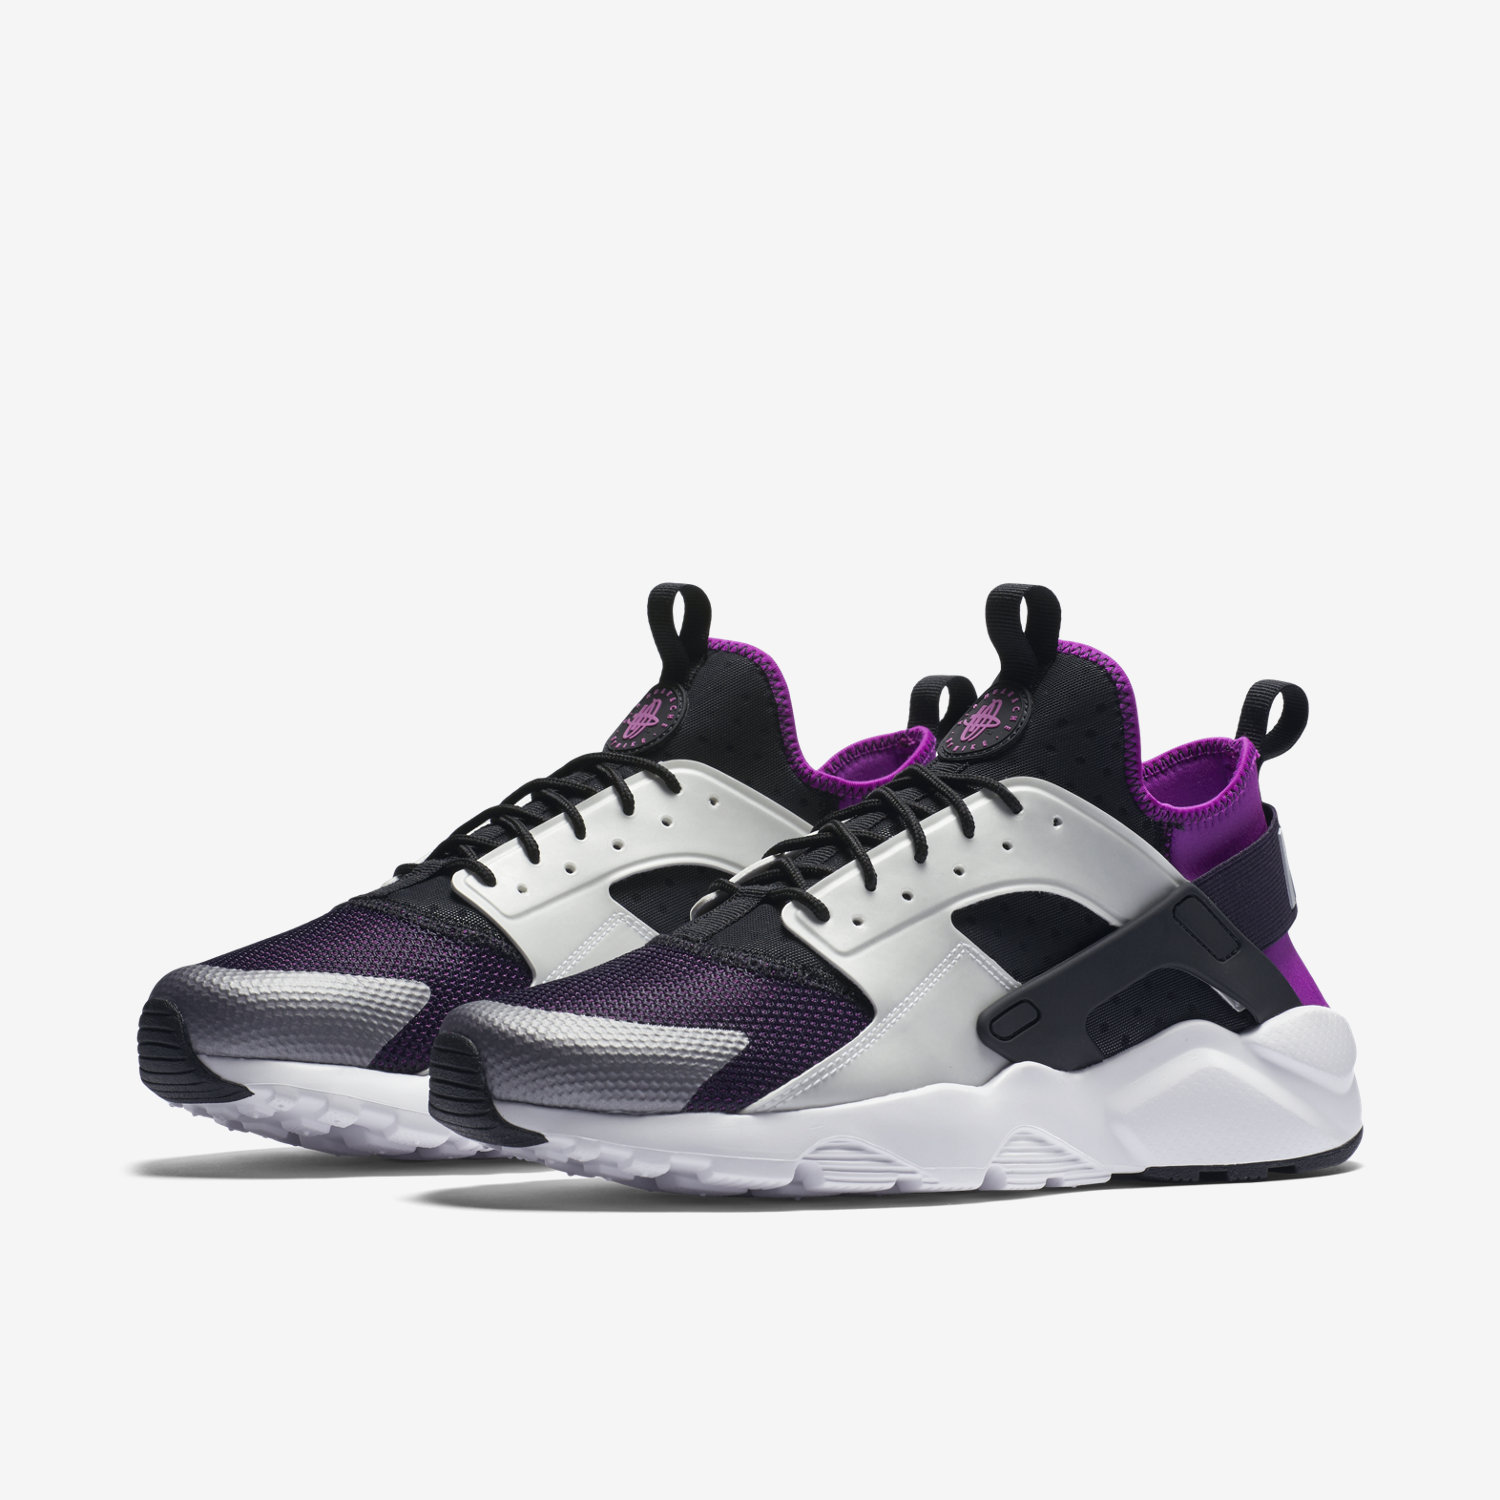 99f20e56f476 nike air huarache iii purple